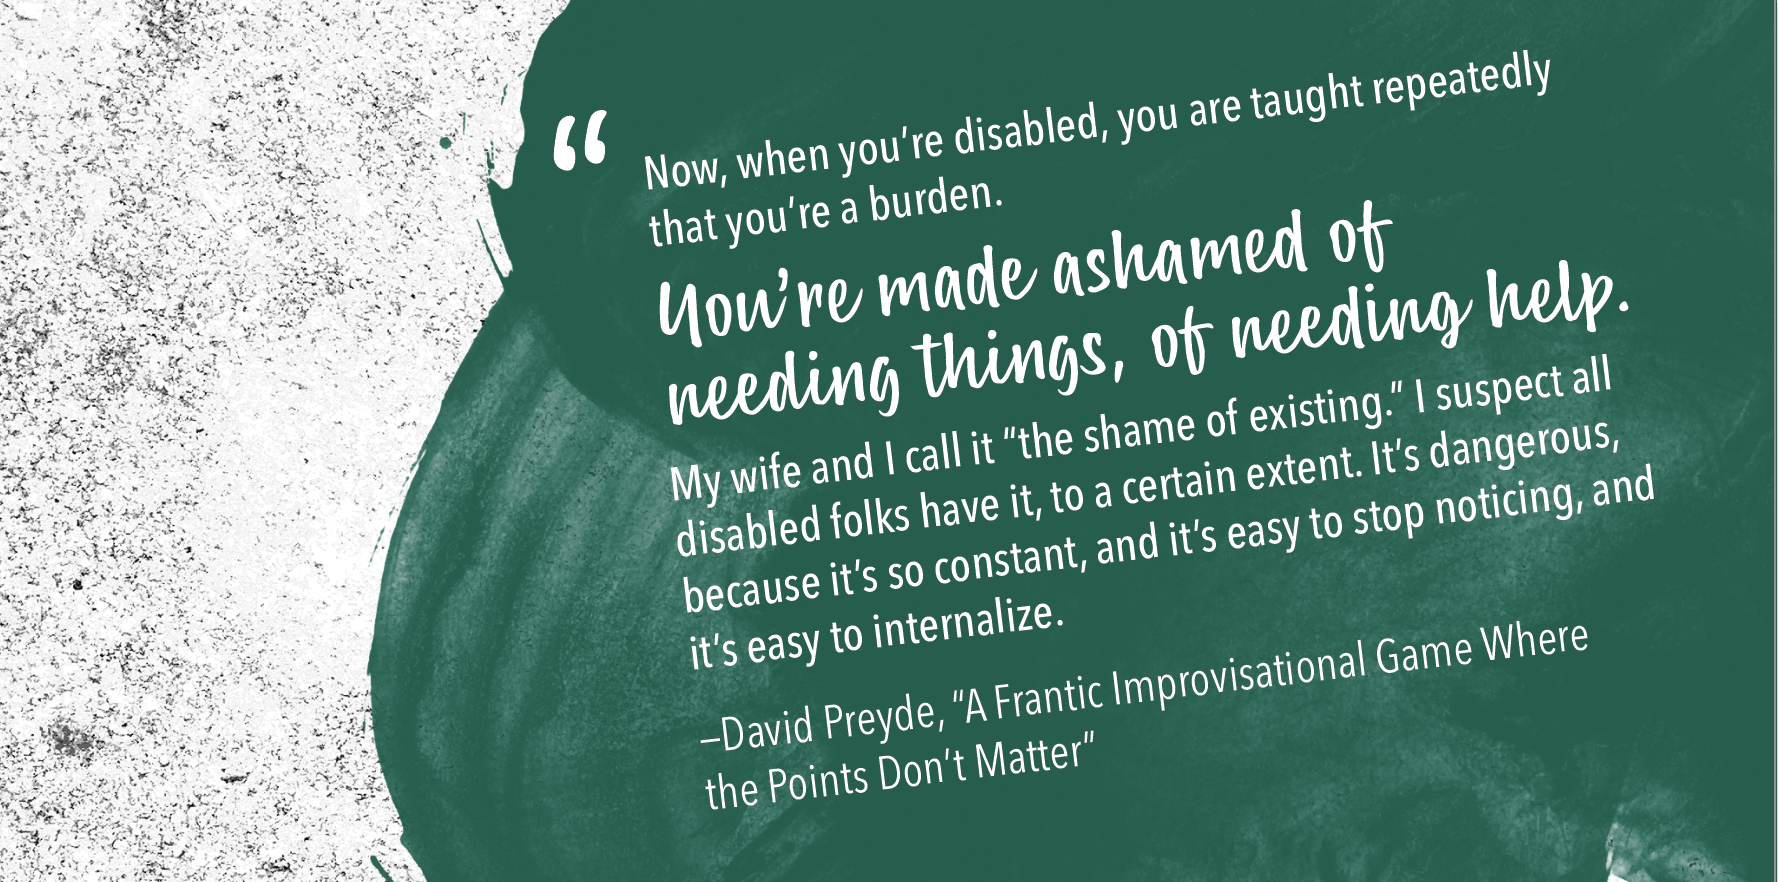 "A graphic with a quote from David Preyde. It says, ""Now, when you're disabled, you are made to feel that you're a burden. You're made ashamed of needing things, of needing help. My wife and I call it 'the shame of existing.' I suspect all disabled folks have it, to a certain extent. It's dangerous, because it's so constant, and it's easy to stop noticing, and it's easy to internalize."" —David Preyde, A Frantic Improvisational Game Where the Points Don't Matter"